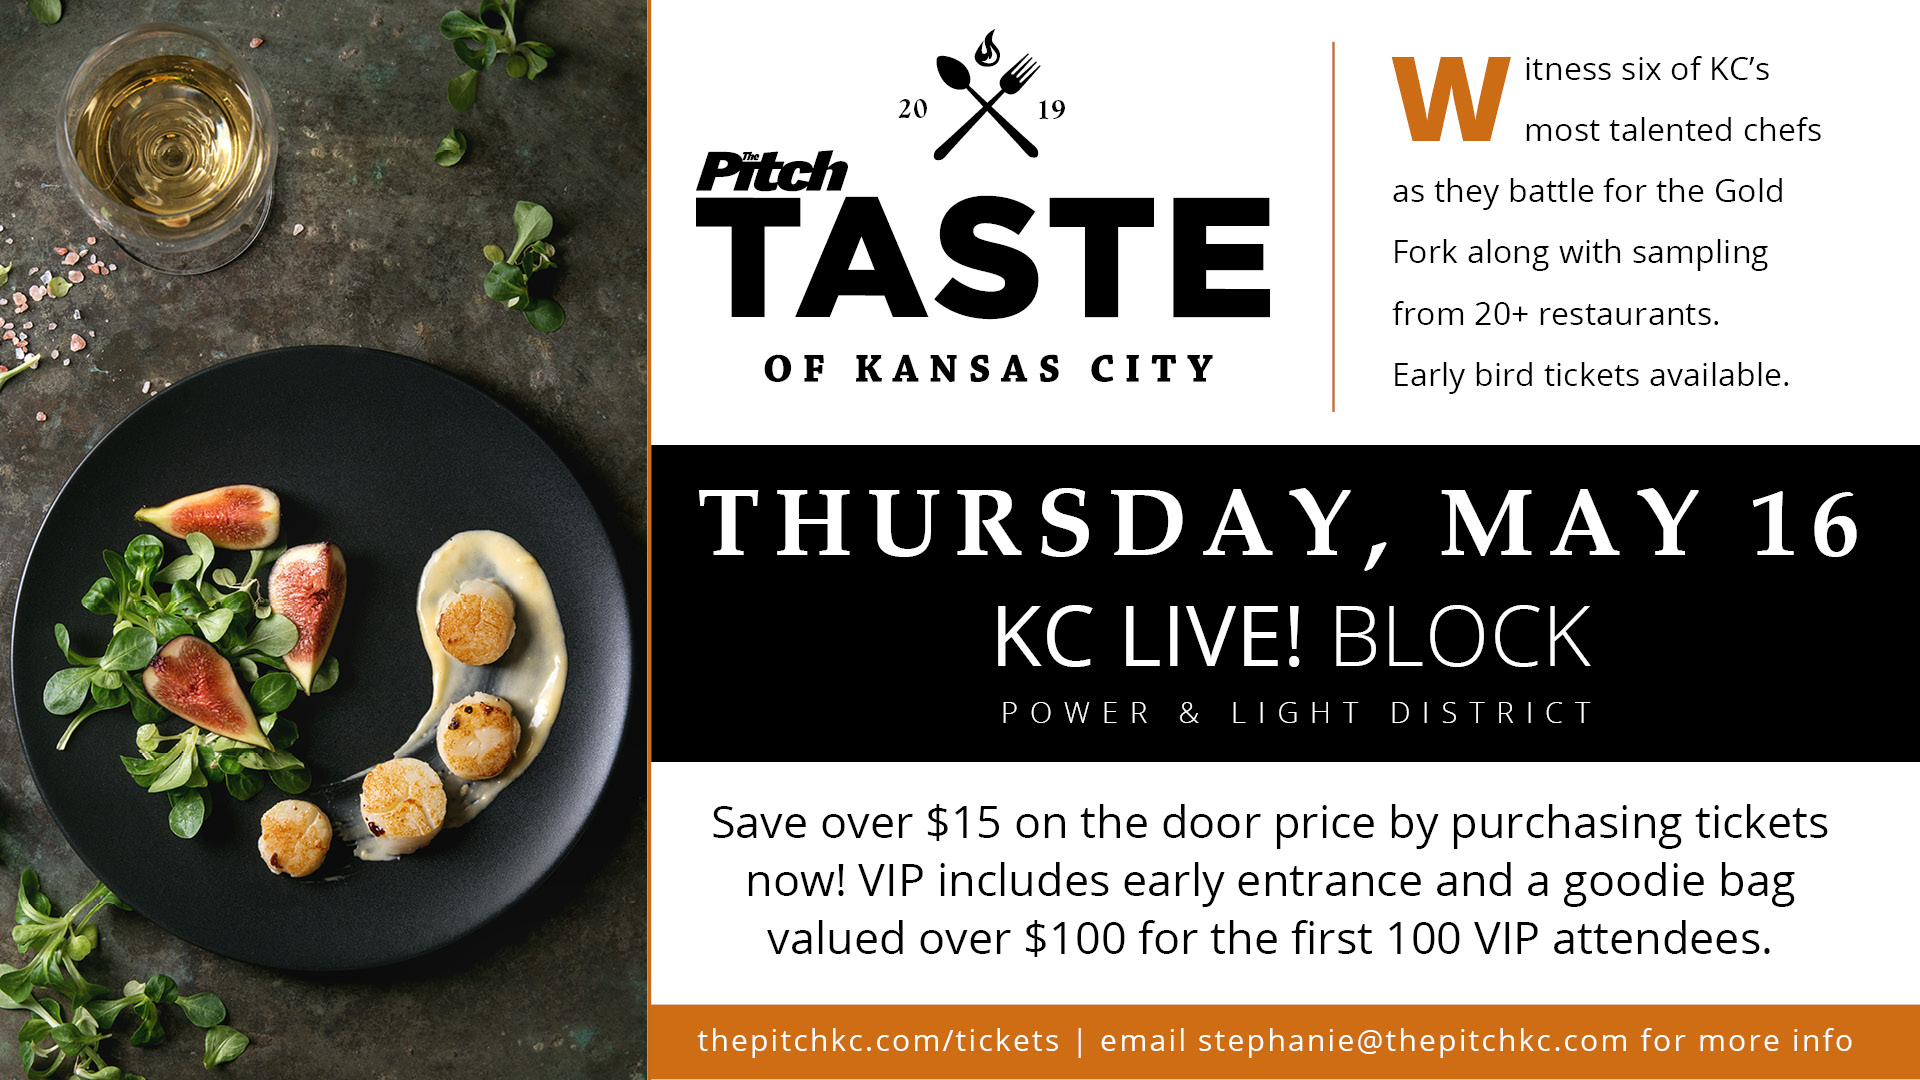 Taste Of Kc Tickets Live Block Kc Power Light District Kc Mo Thu May 16 At 6pm Pitch Tickets